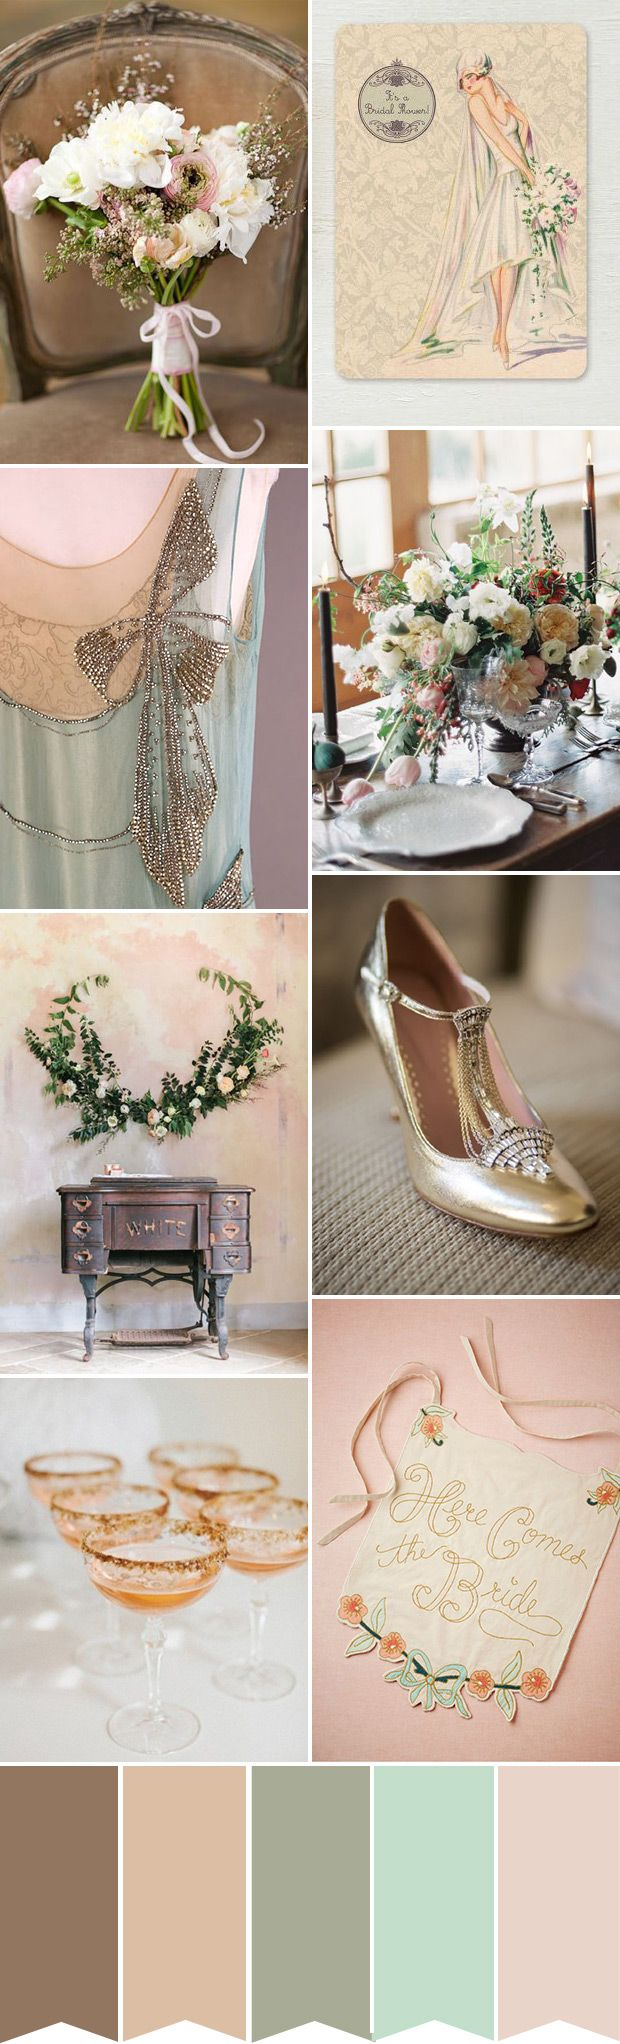 An 1920s inspired wedding colour palette with soft tones and gold accents | www.onefabday.com